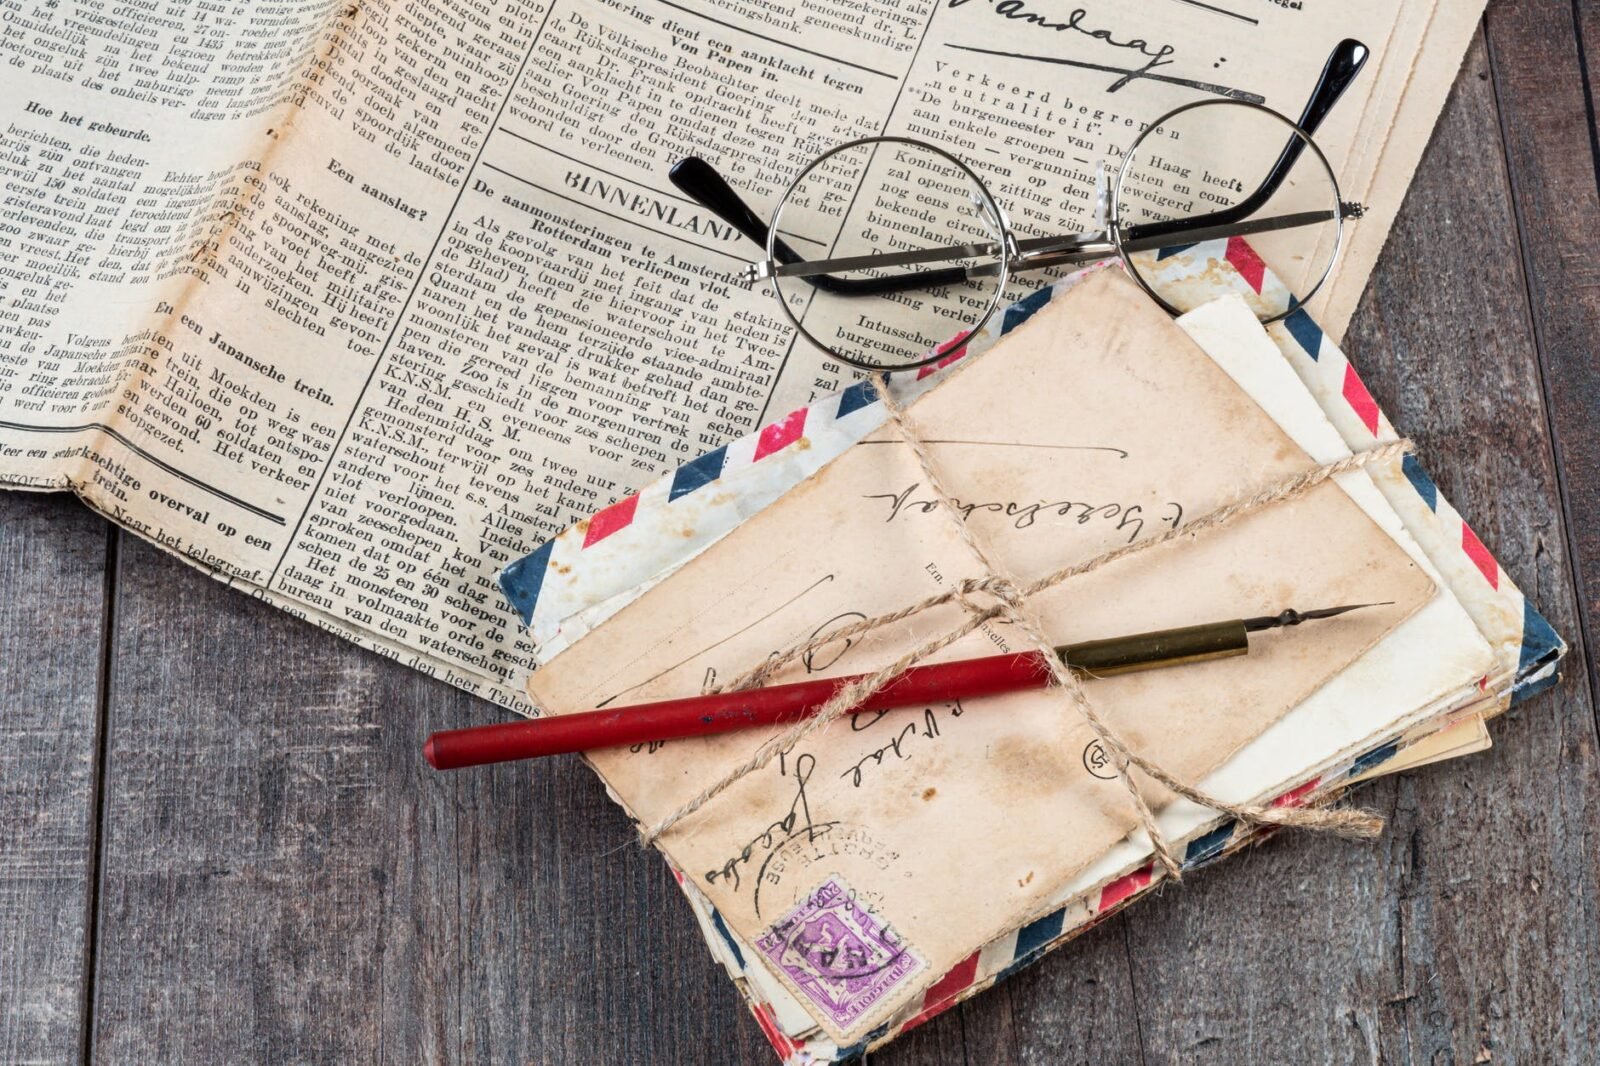 eyeglasses on newspaper beside mail envelops